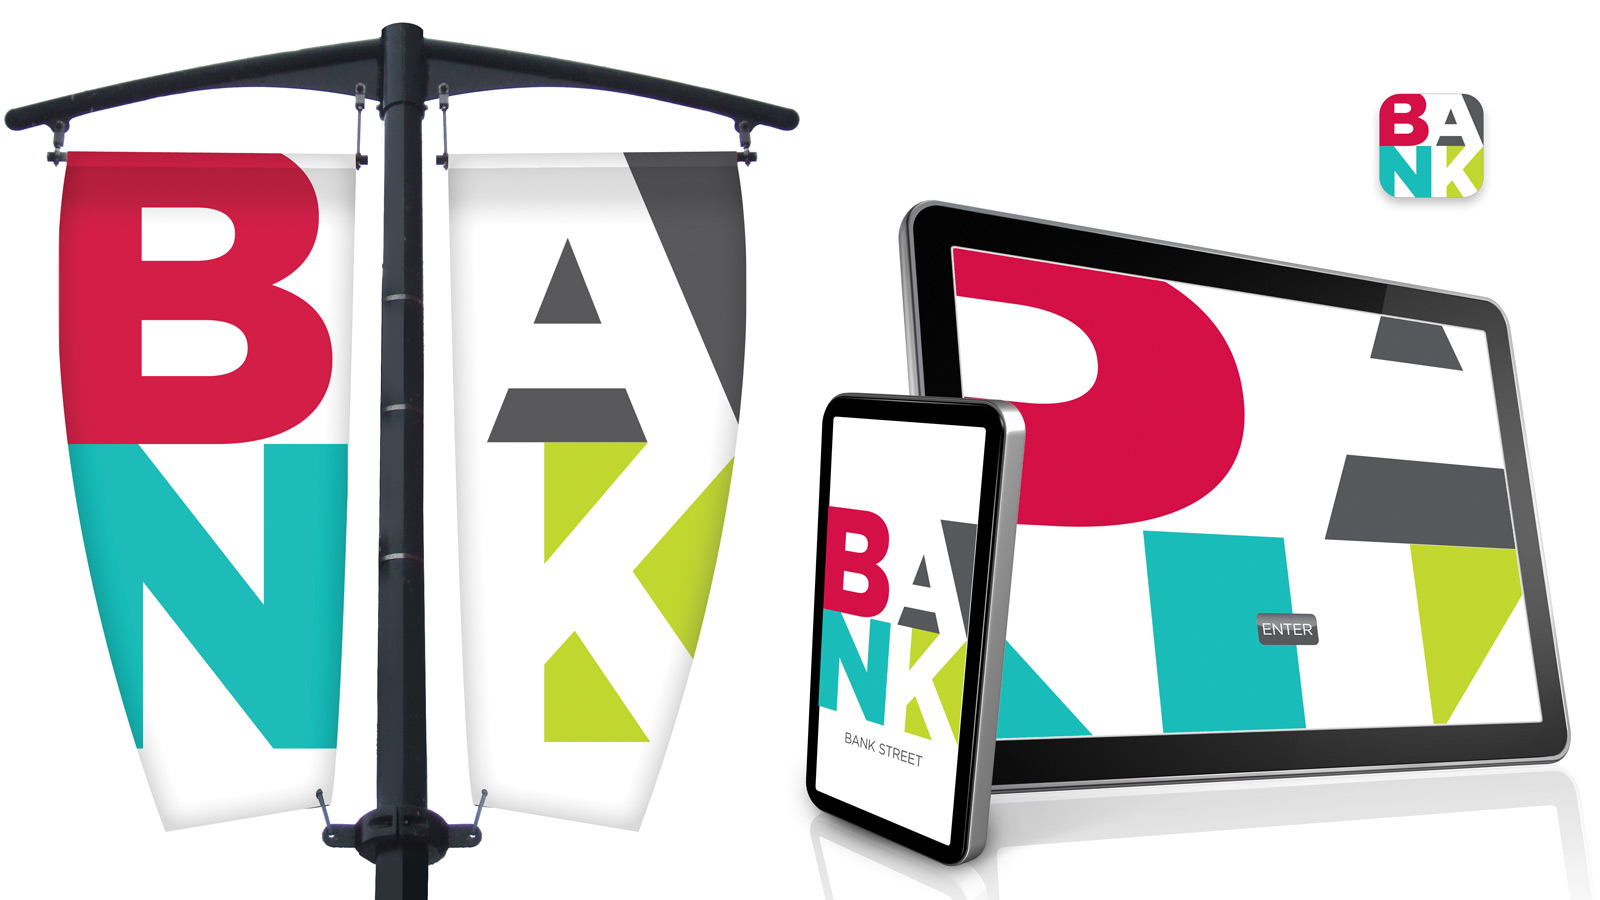 Place Branding Clients | Place Branding | Brand Strategy, Design, Place Branding